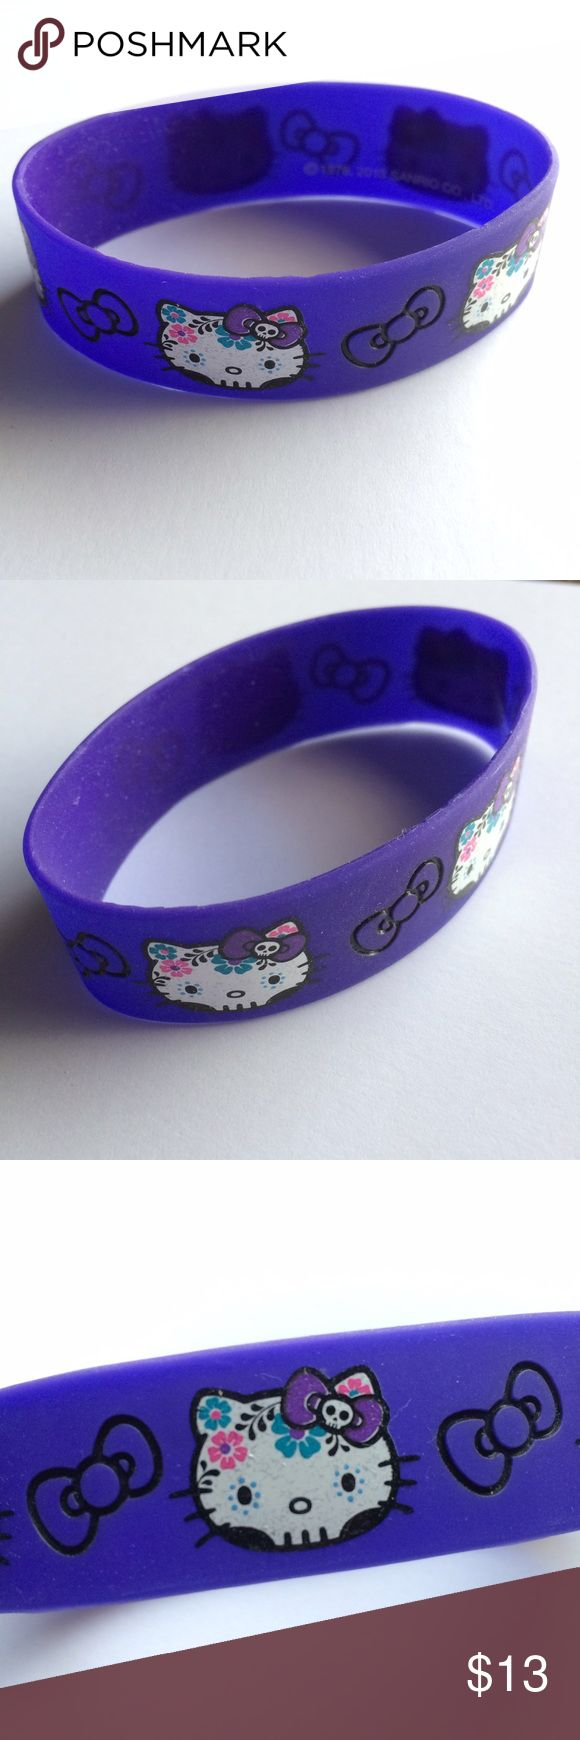 Hello Kitty Dia DeLos Muertos Sugar Skull Bracelet Add some sweetness with this dia de los muertos & sugar skull-inspired Hello Kitty rubber/silicon bracelet! Loved for a while, then wasn't my style; used to work for Sanrio. Barely worn, excellent condition without peeling or discoloration. Bundle it up with other Hello Kitty items or something else in my closet and get 15% off 2+ items! Hot Topic Jewelry Bracelets